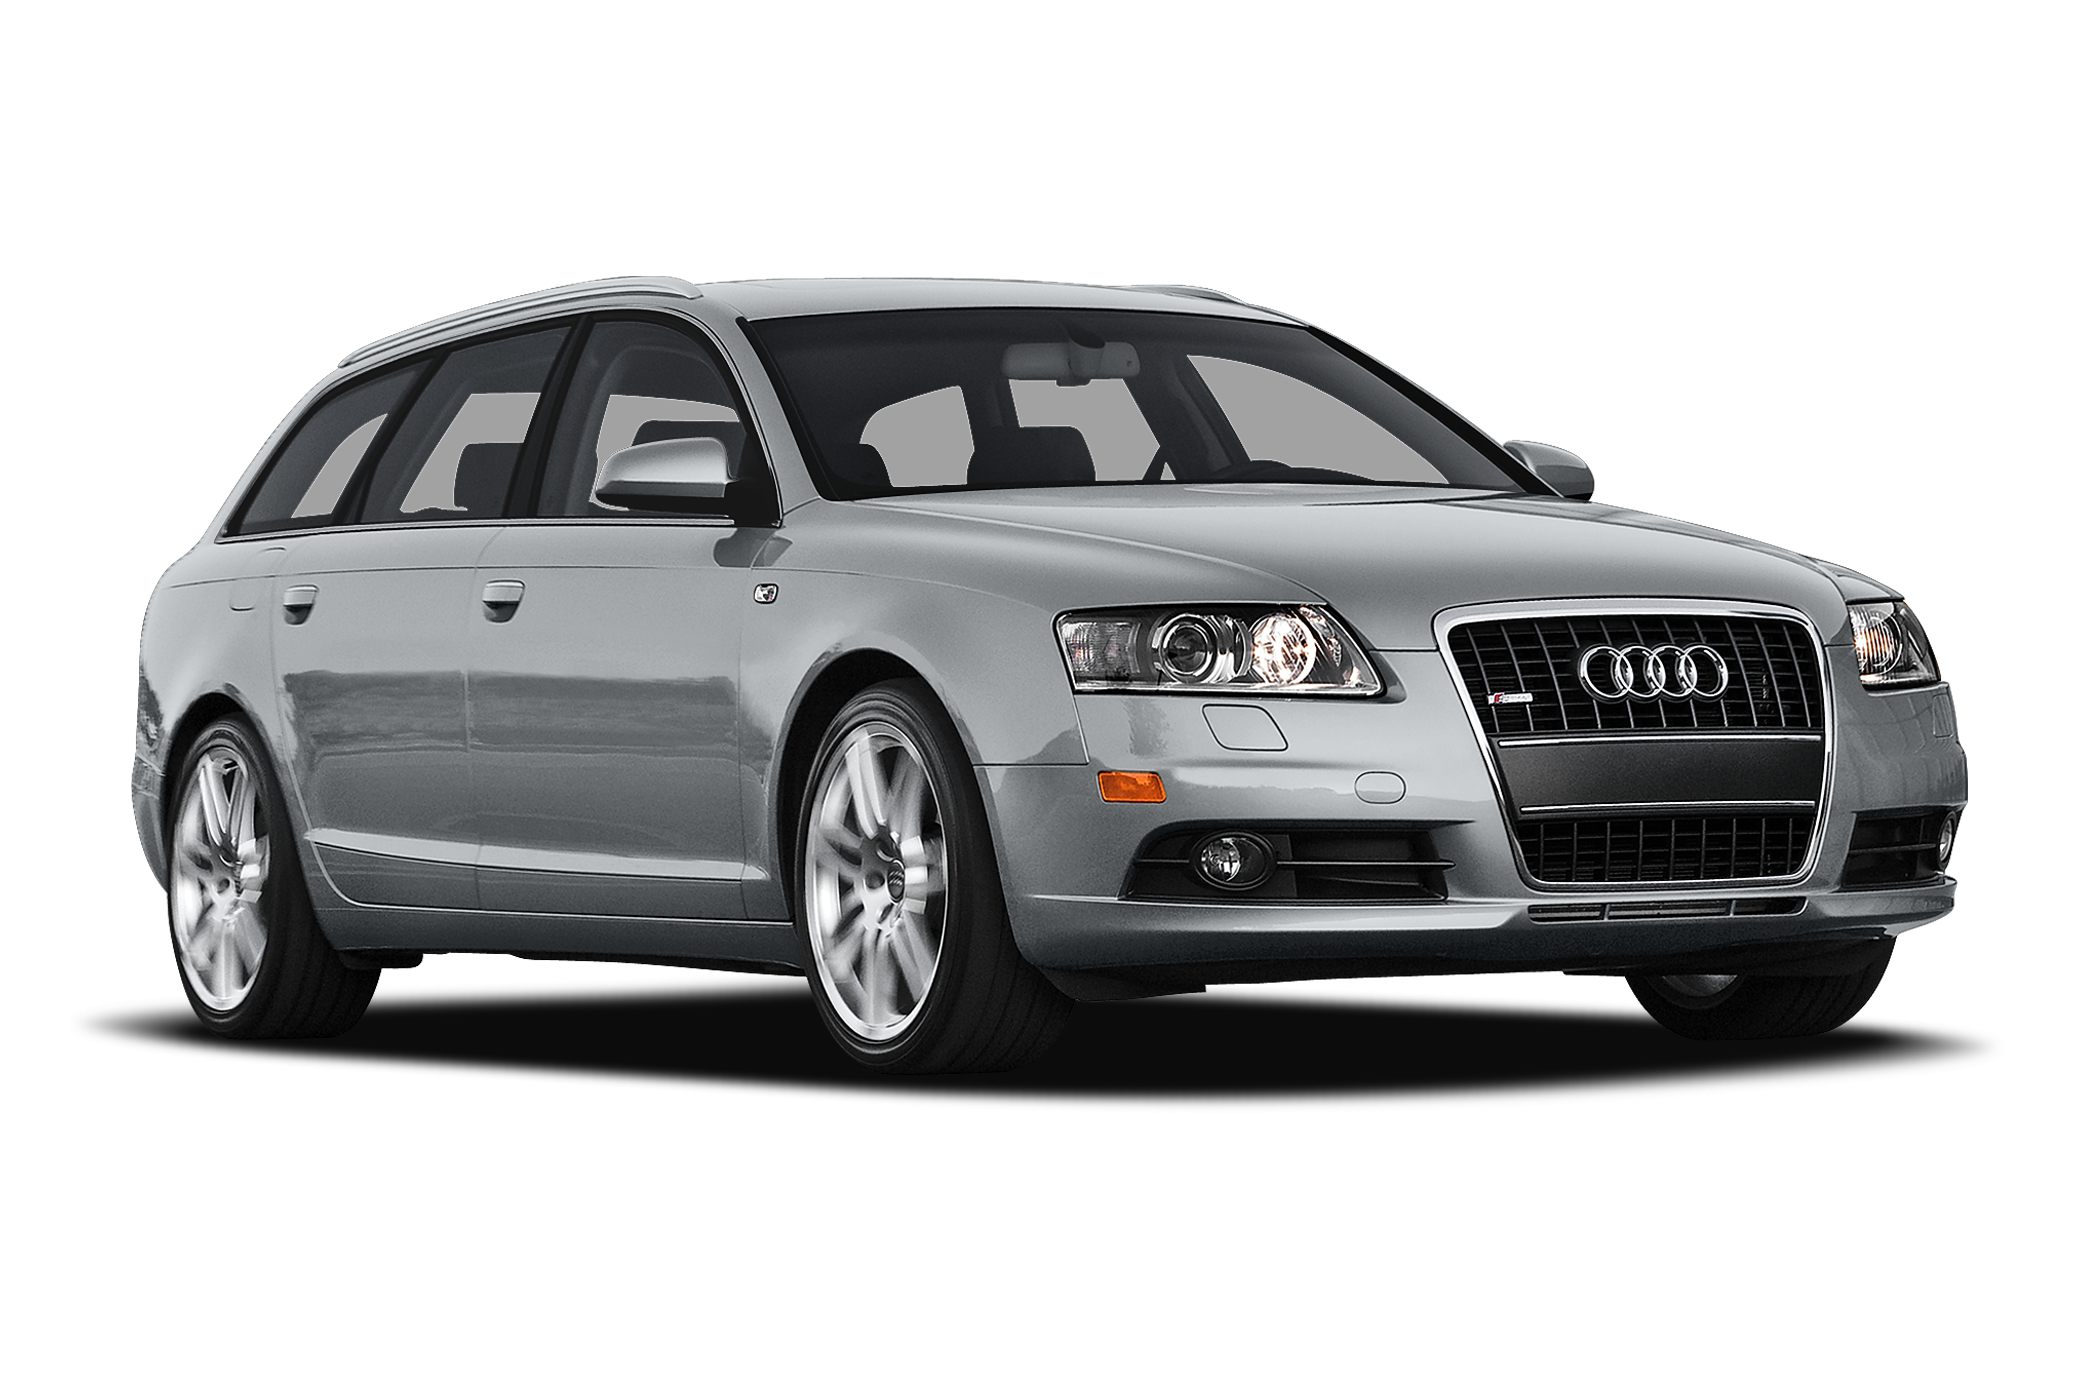 2008 Audi A6 32 Avant quattro DISCLAIMER We are excited to offer this vehicle to you but it is cu